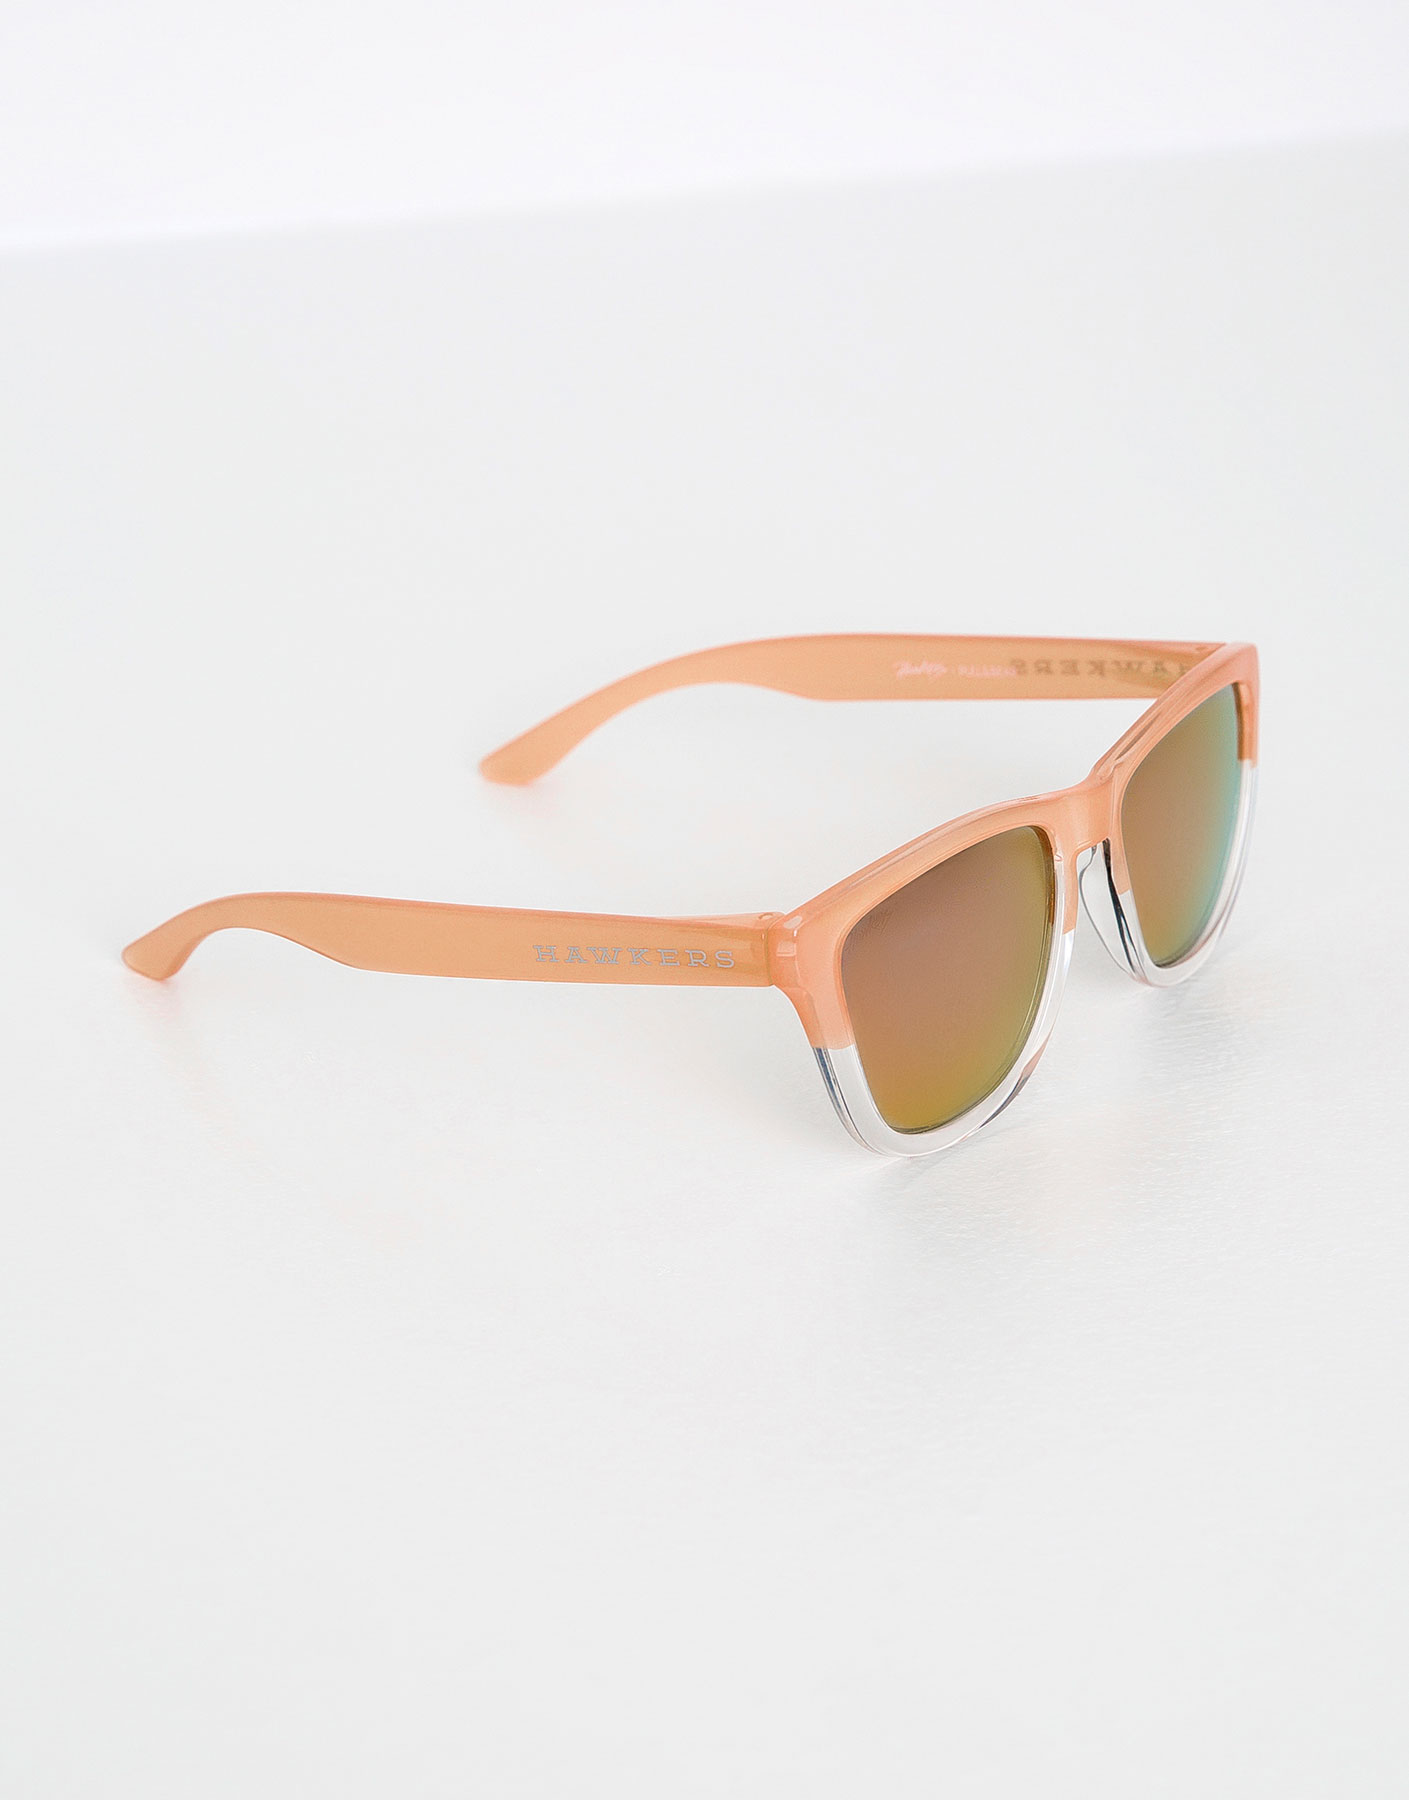 Hawkers hybrid rose gold one sunglasses